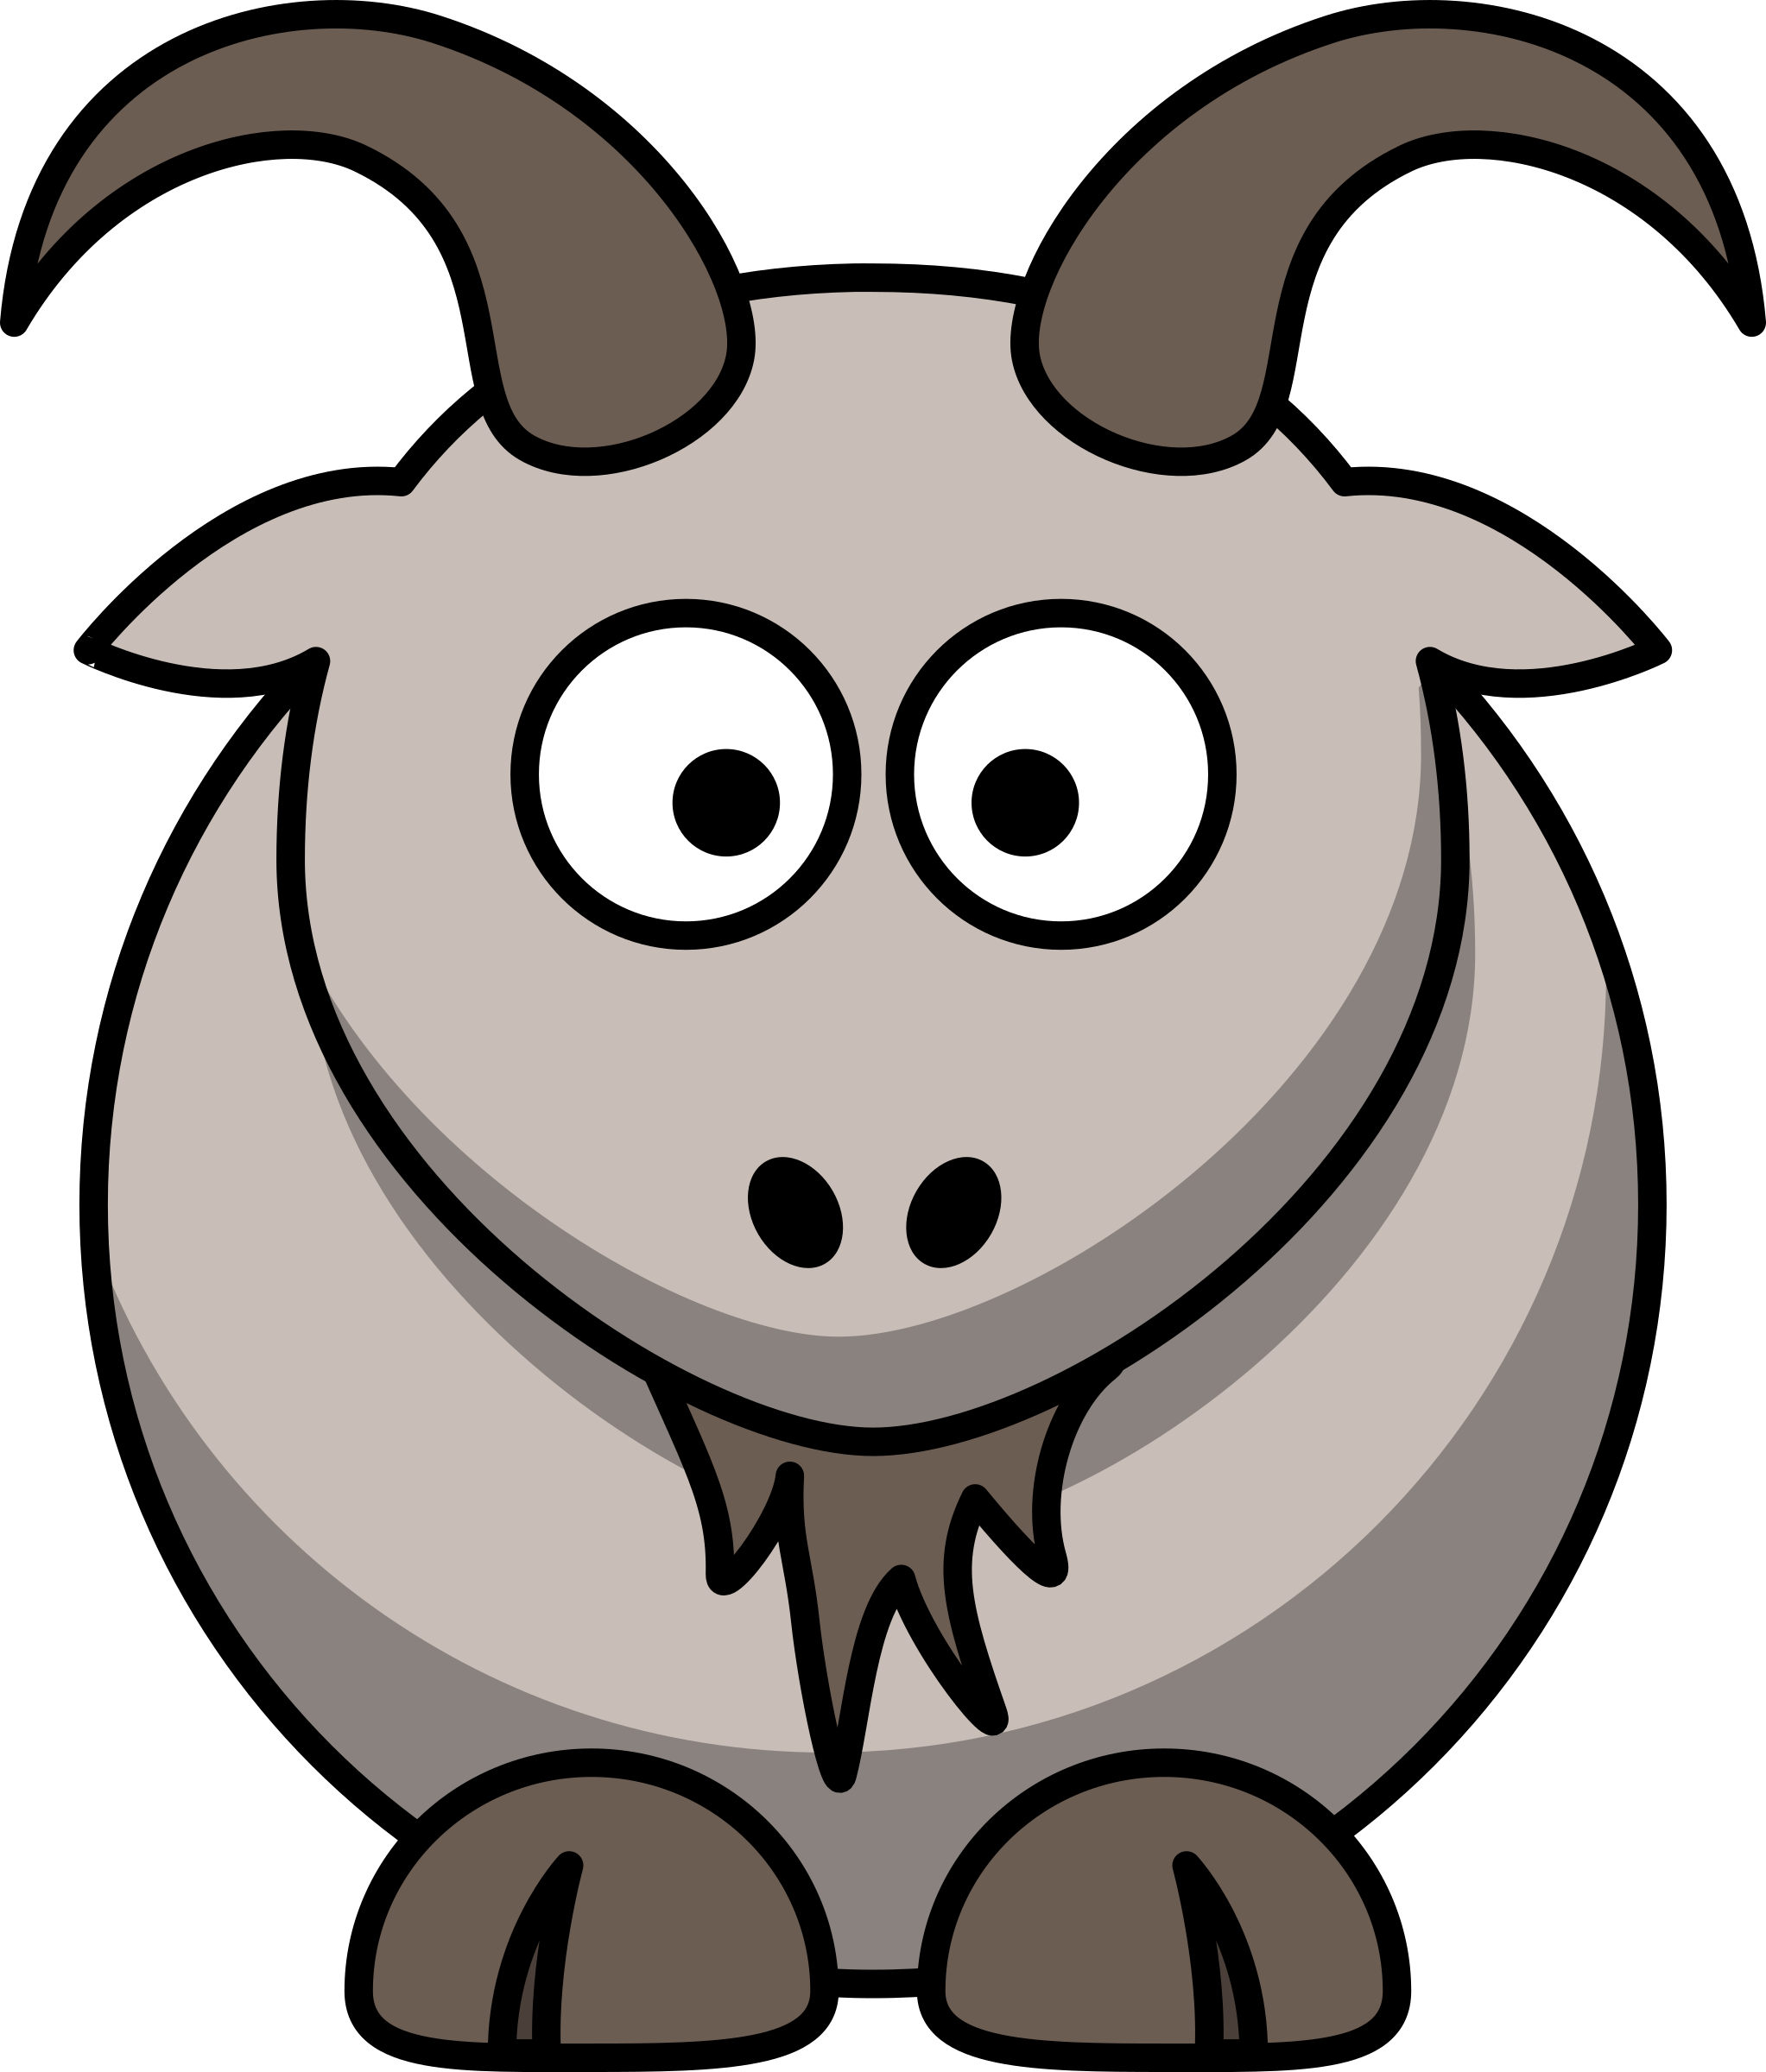 funny animal clipart at getdrawings com free for personal use rh getdrawings com funny animal clipart black and white funny animal clipart images